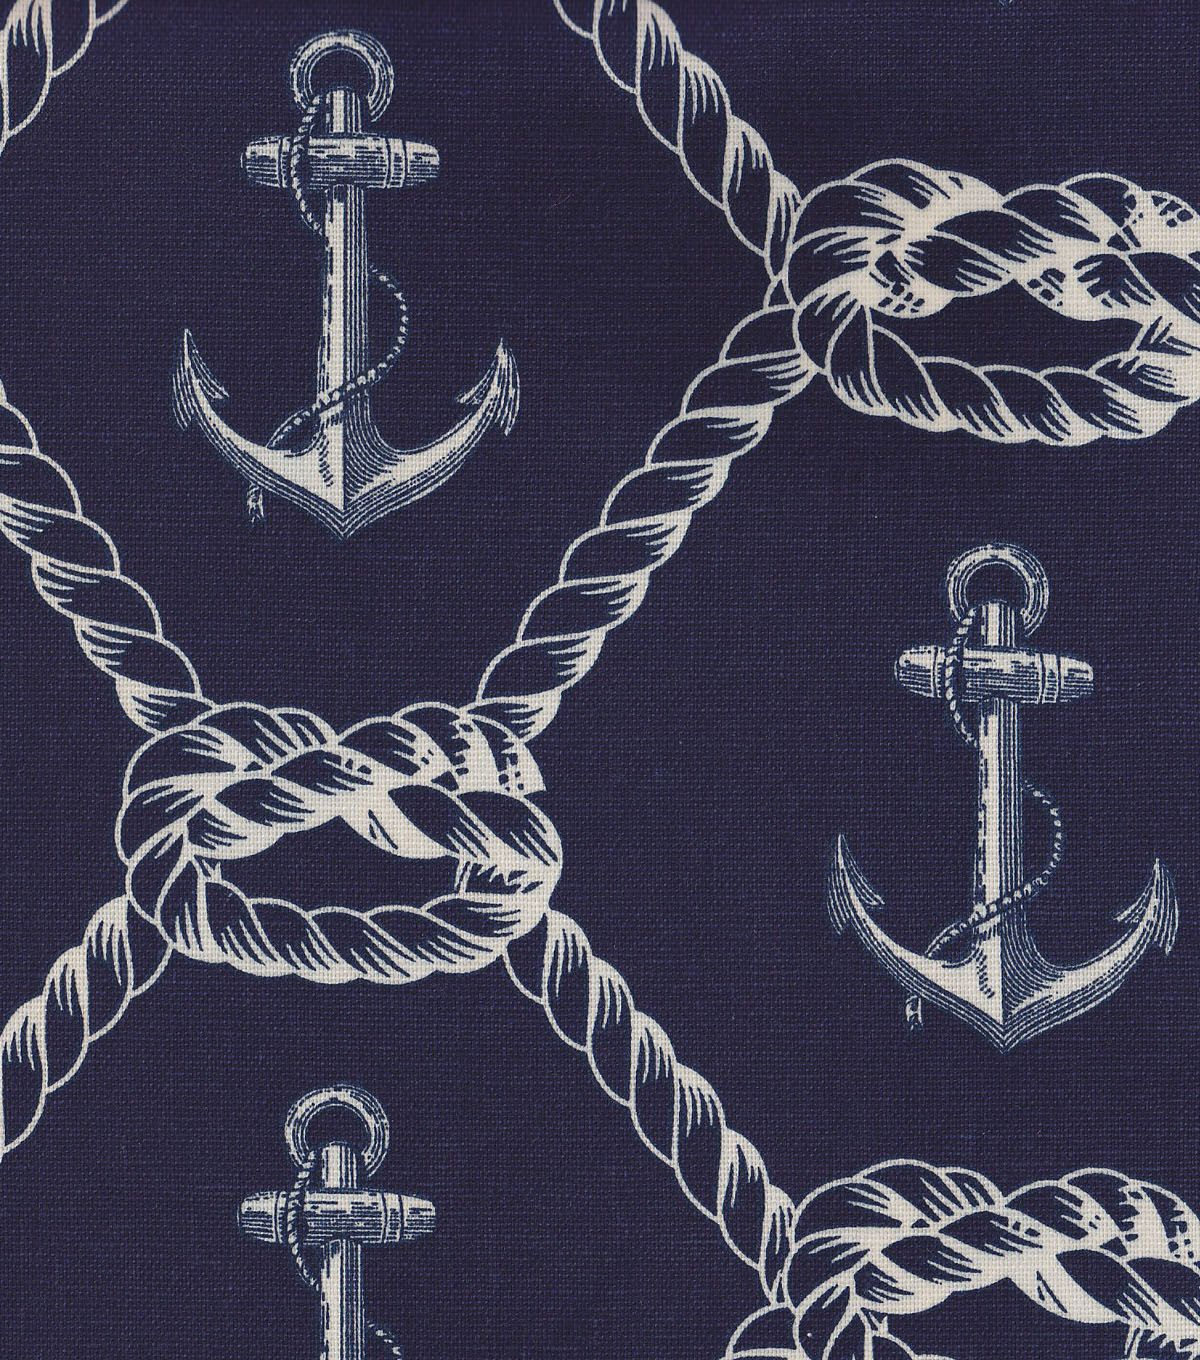 Nautical Fabric Anchors Rope Home Decor Fabric Decor